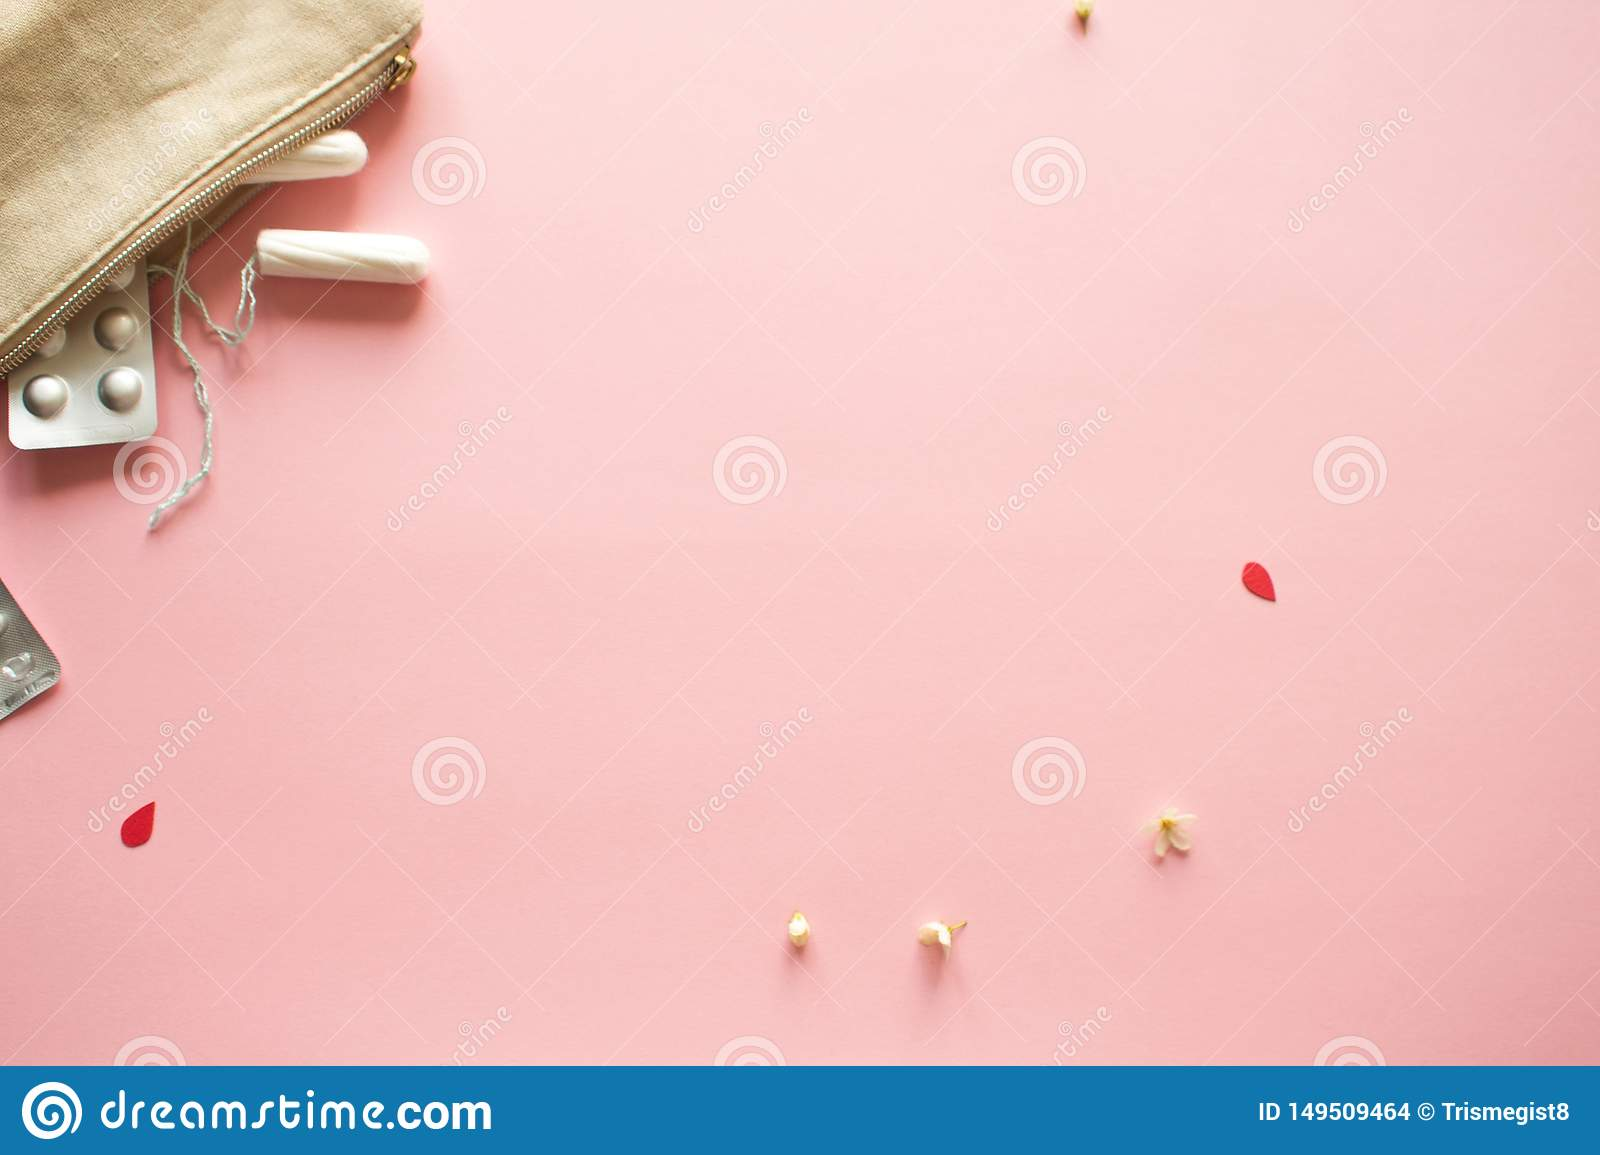 PMS and the critical days concept. Pain pills and personal care products, pink background